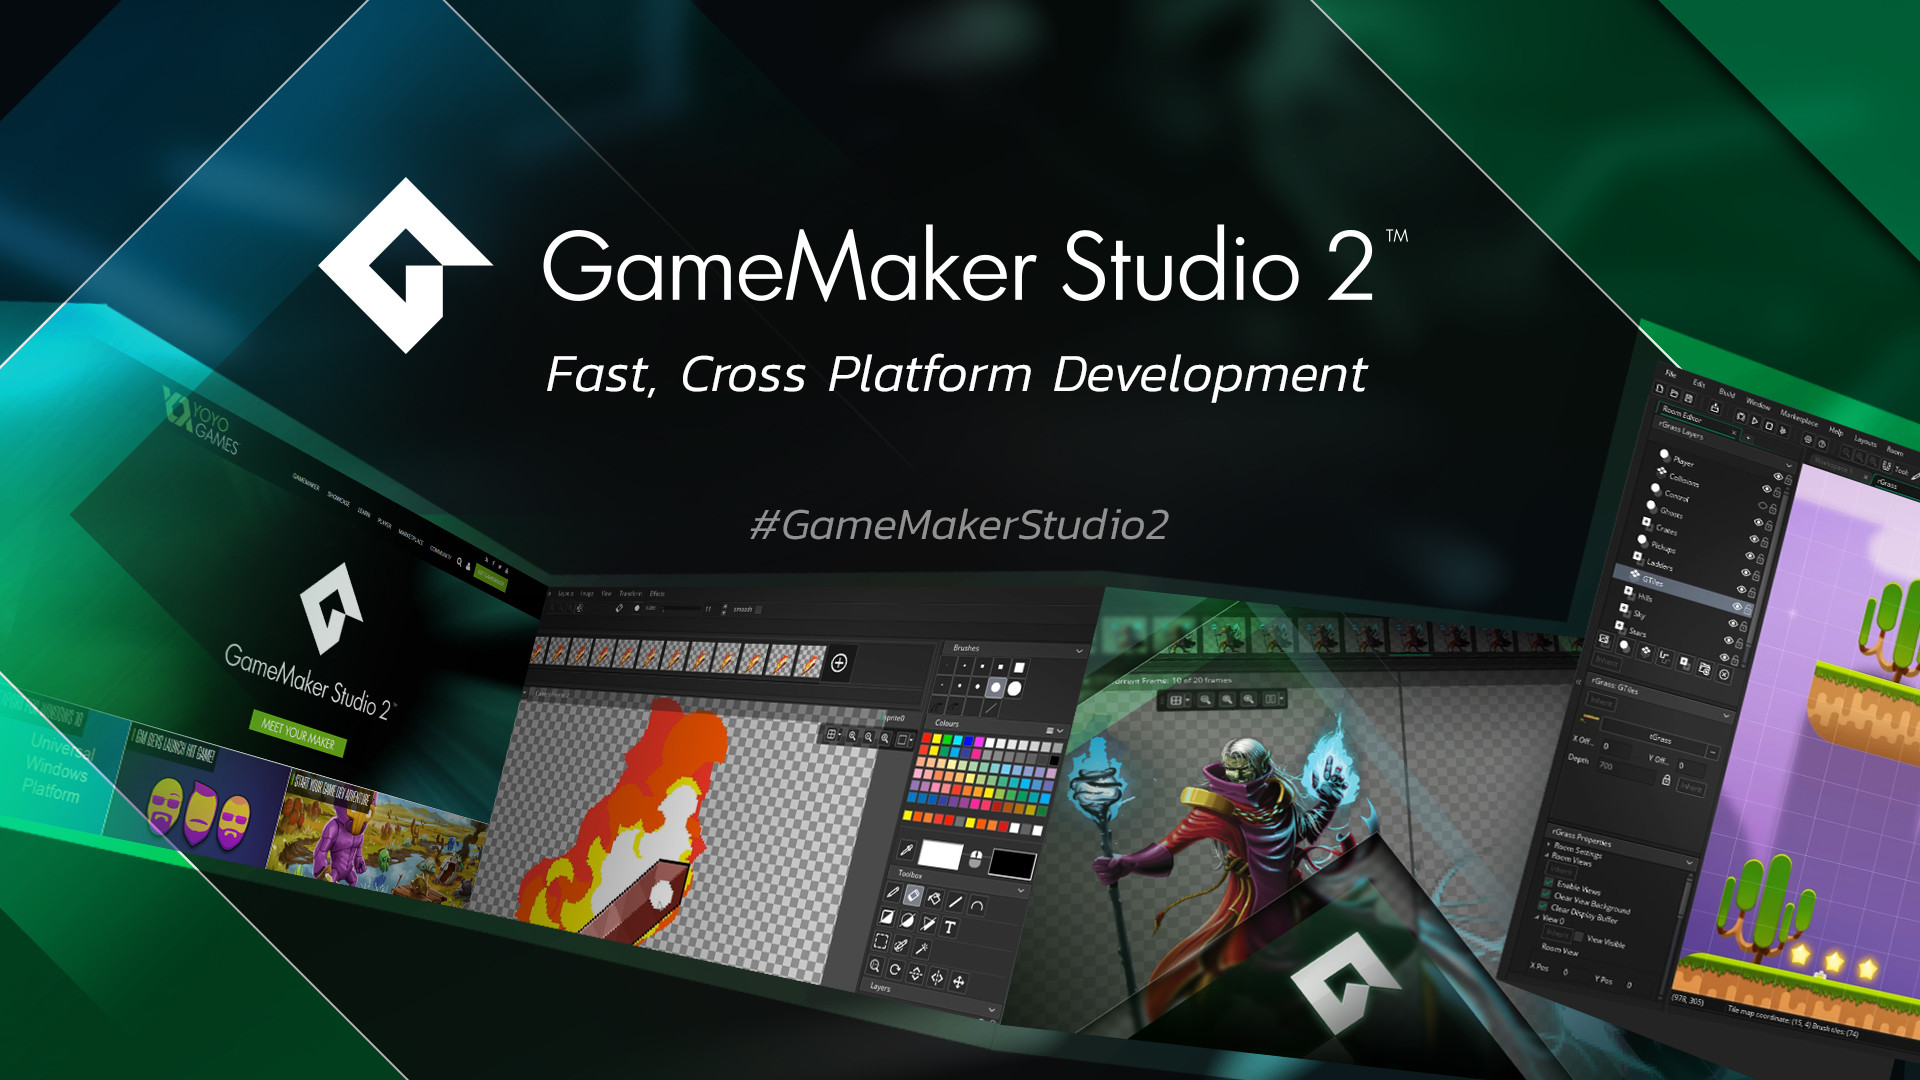 1920x1080 GameMaker Studio 2.0.7 and Console Exports - Out Now!